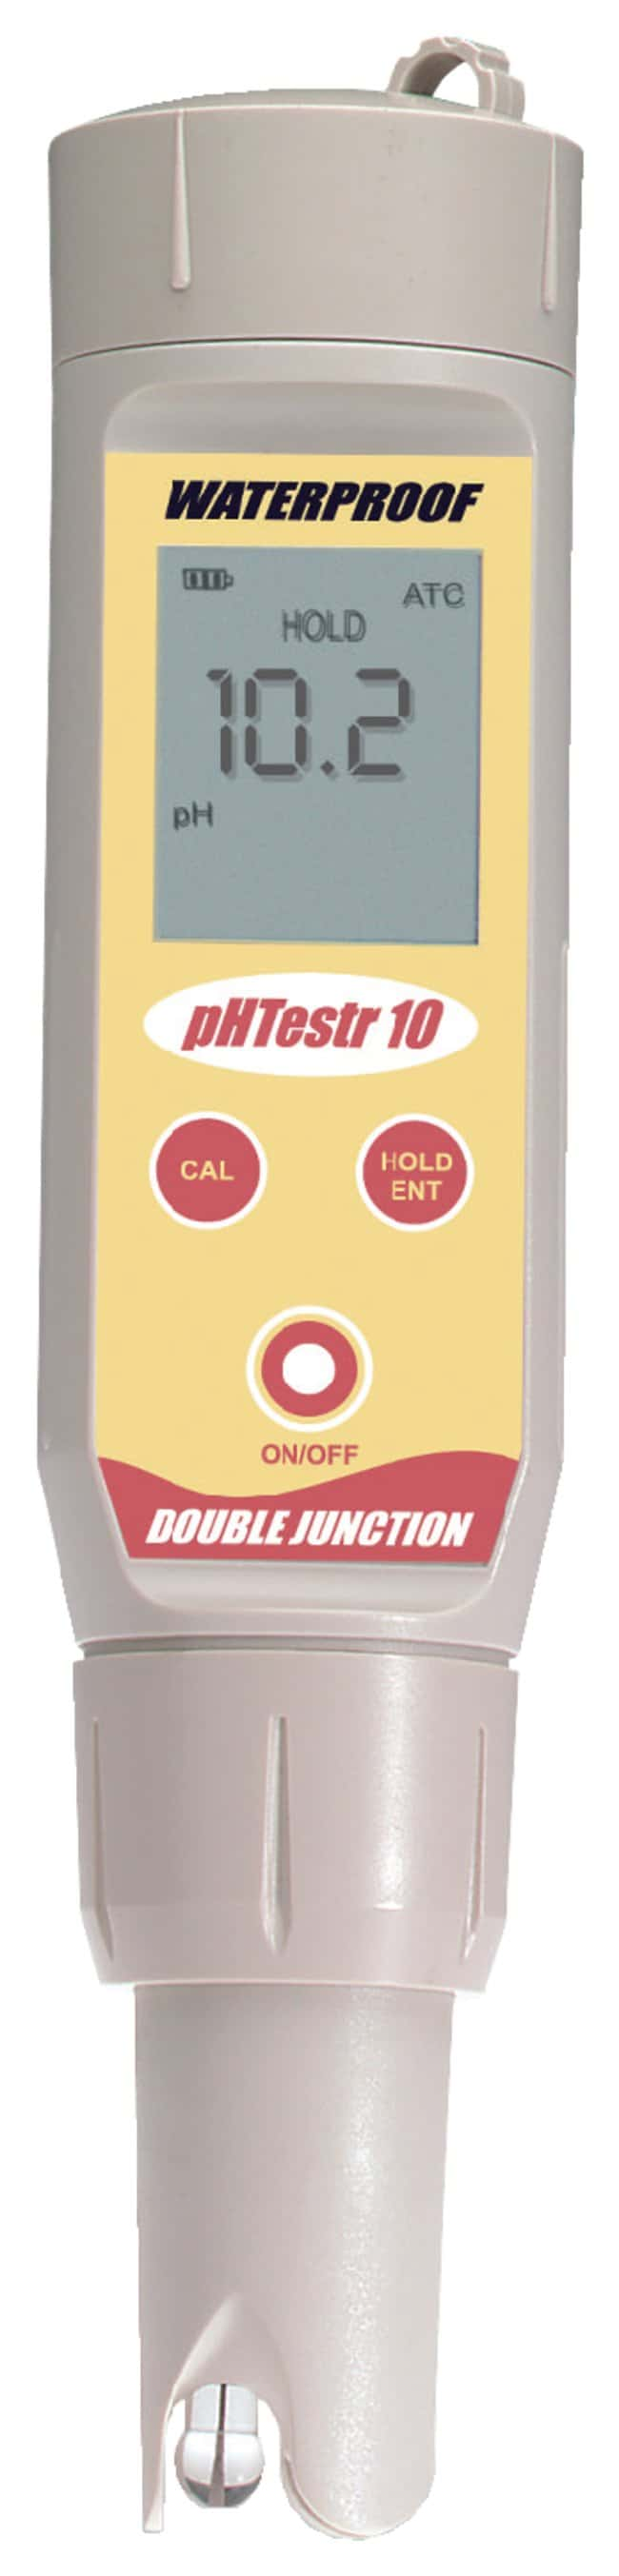 Oakton Waterproof, Double-Junction pHTestr :Teaching Supplies:Chemistry